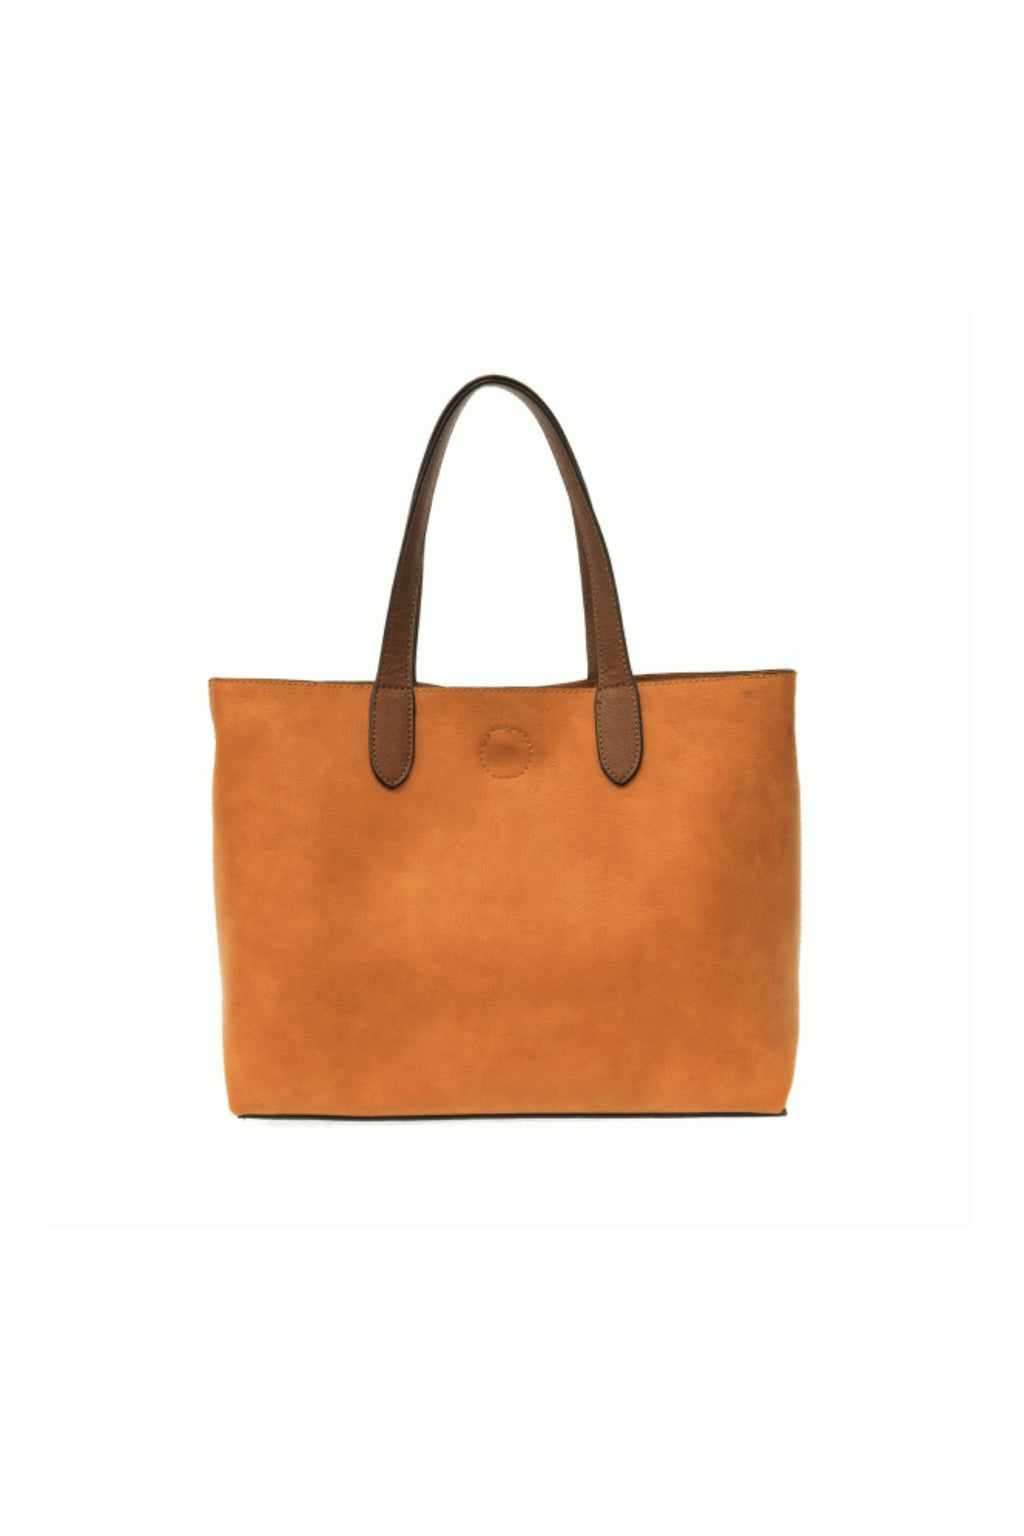 Mariah Convertible Tote - Honey/Coffee